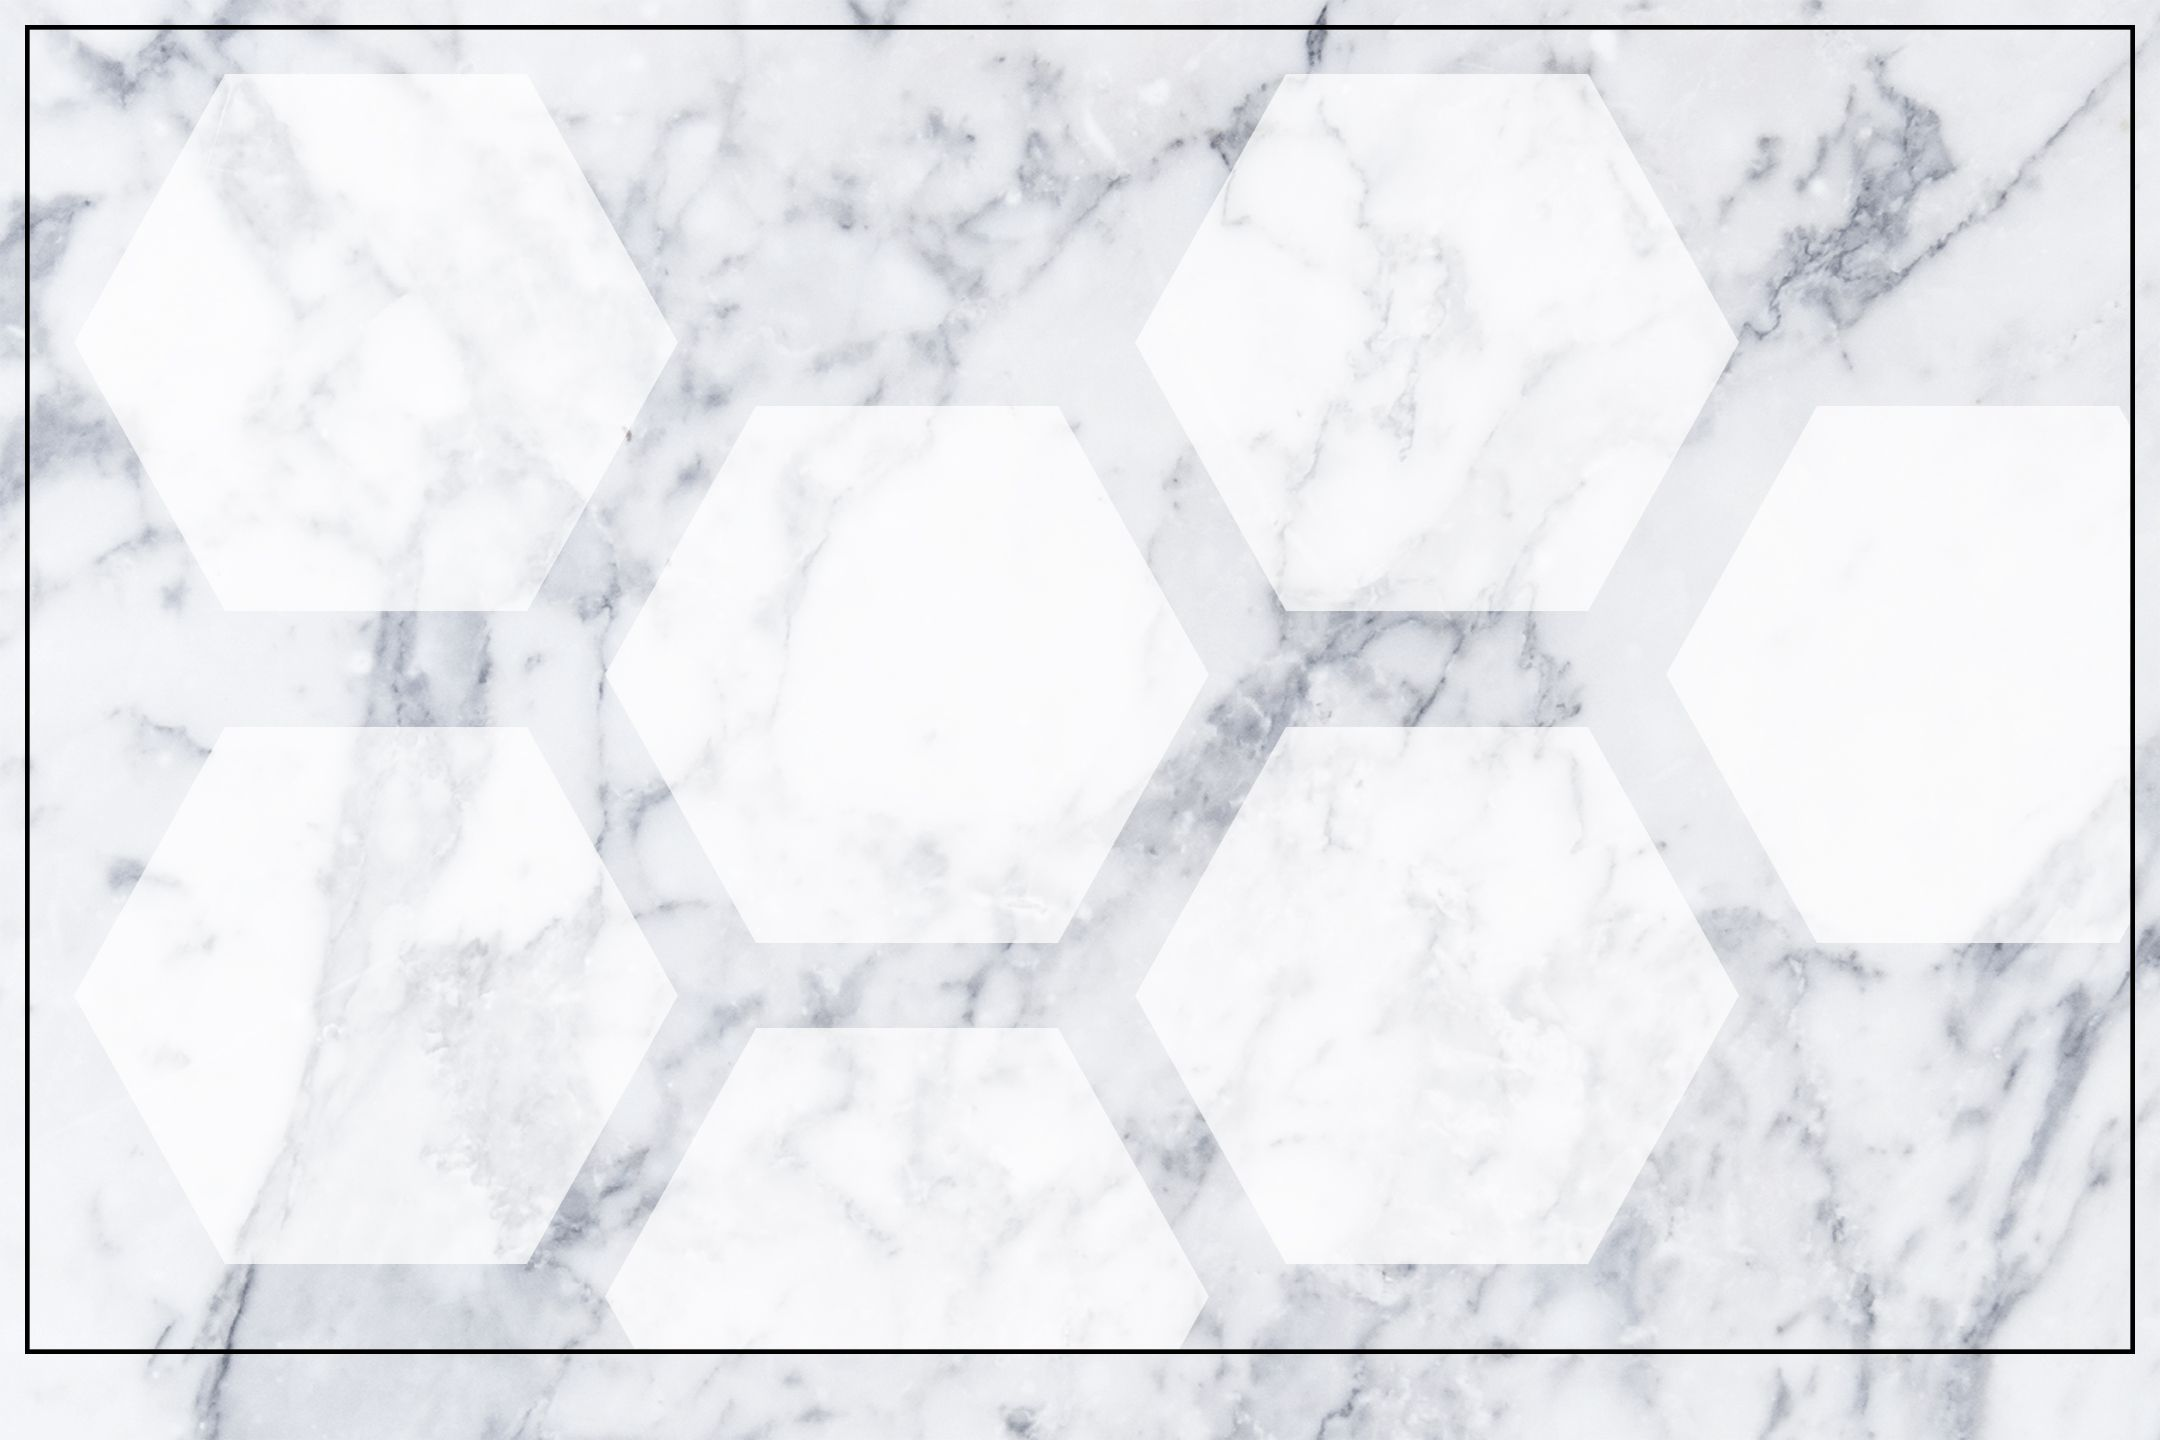 Marble Wallpaper Organizer For Those That Like To Keep Their